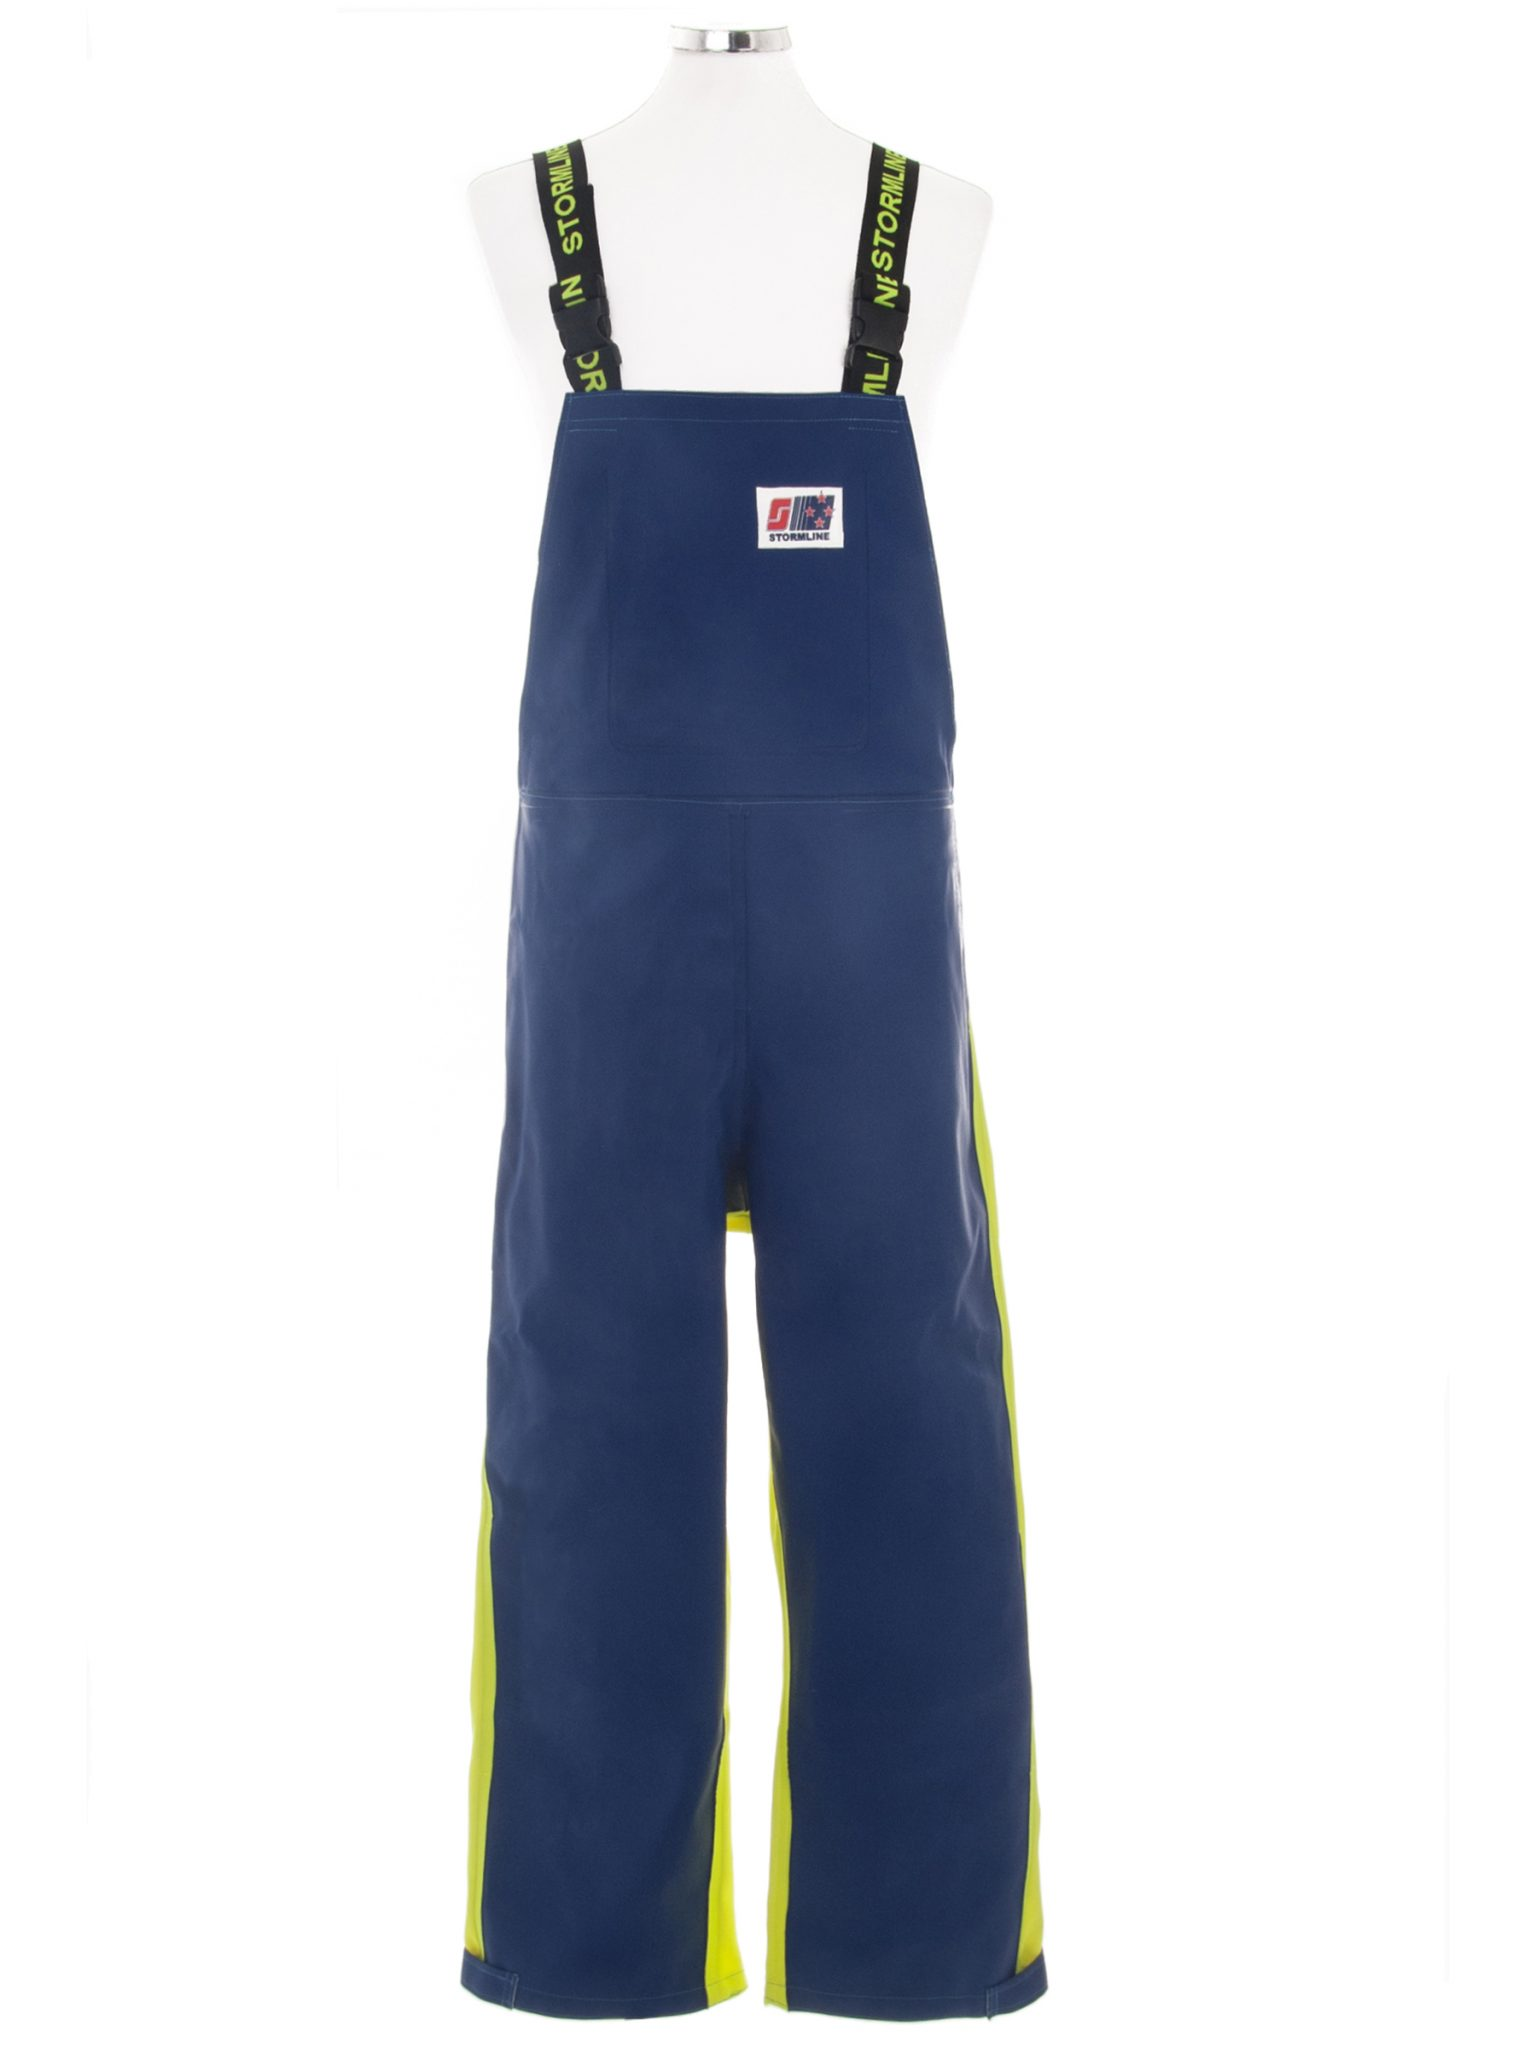 fishing Foul weather gear pants